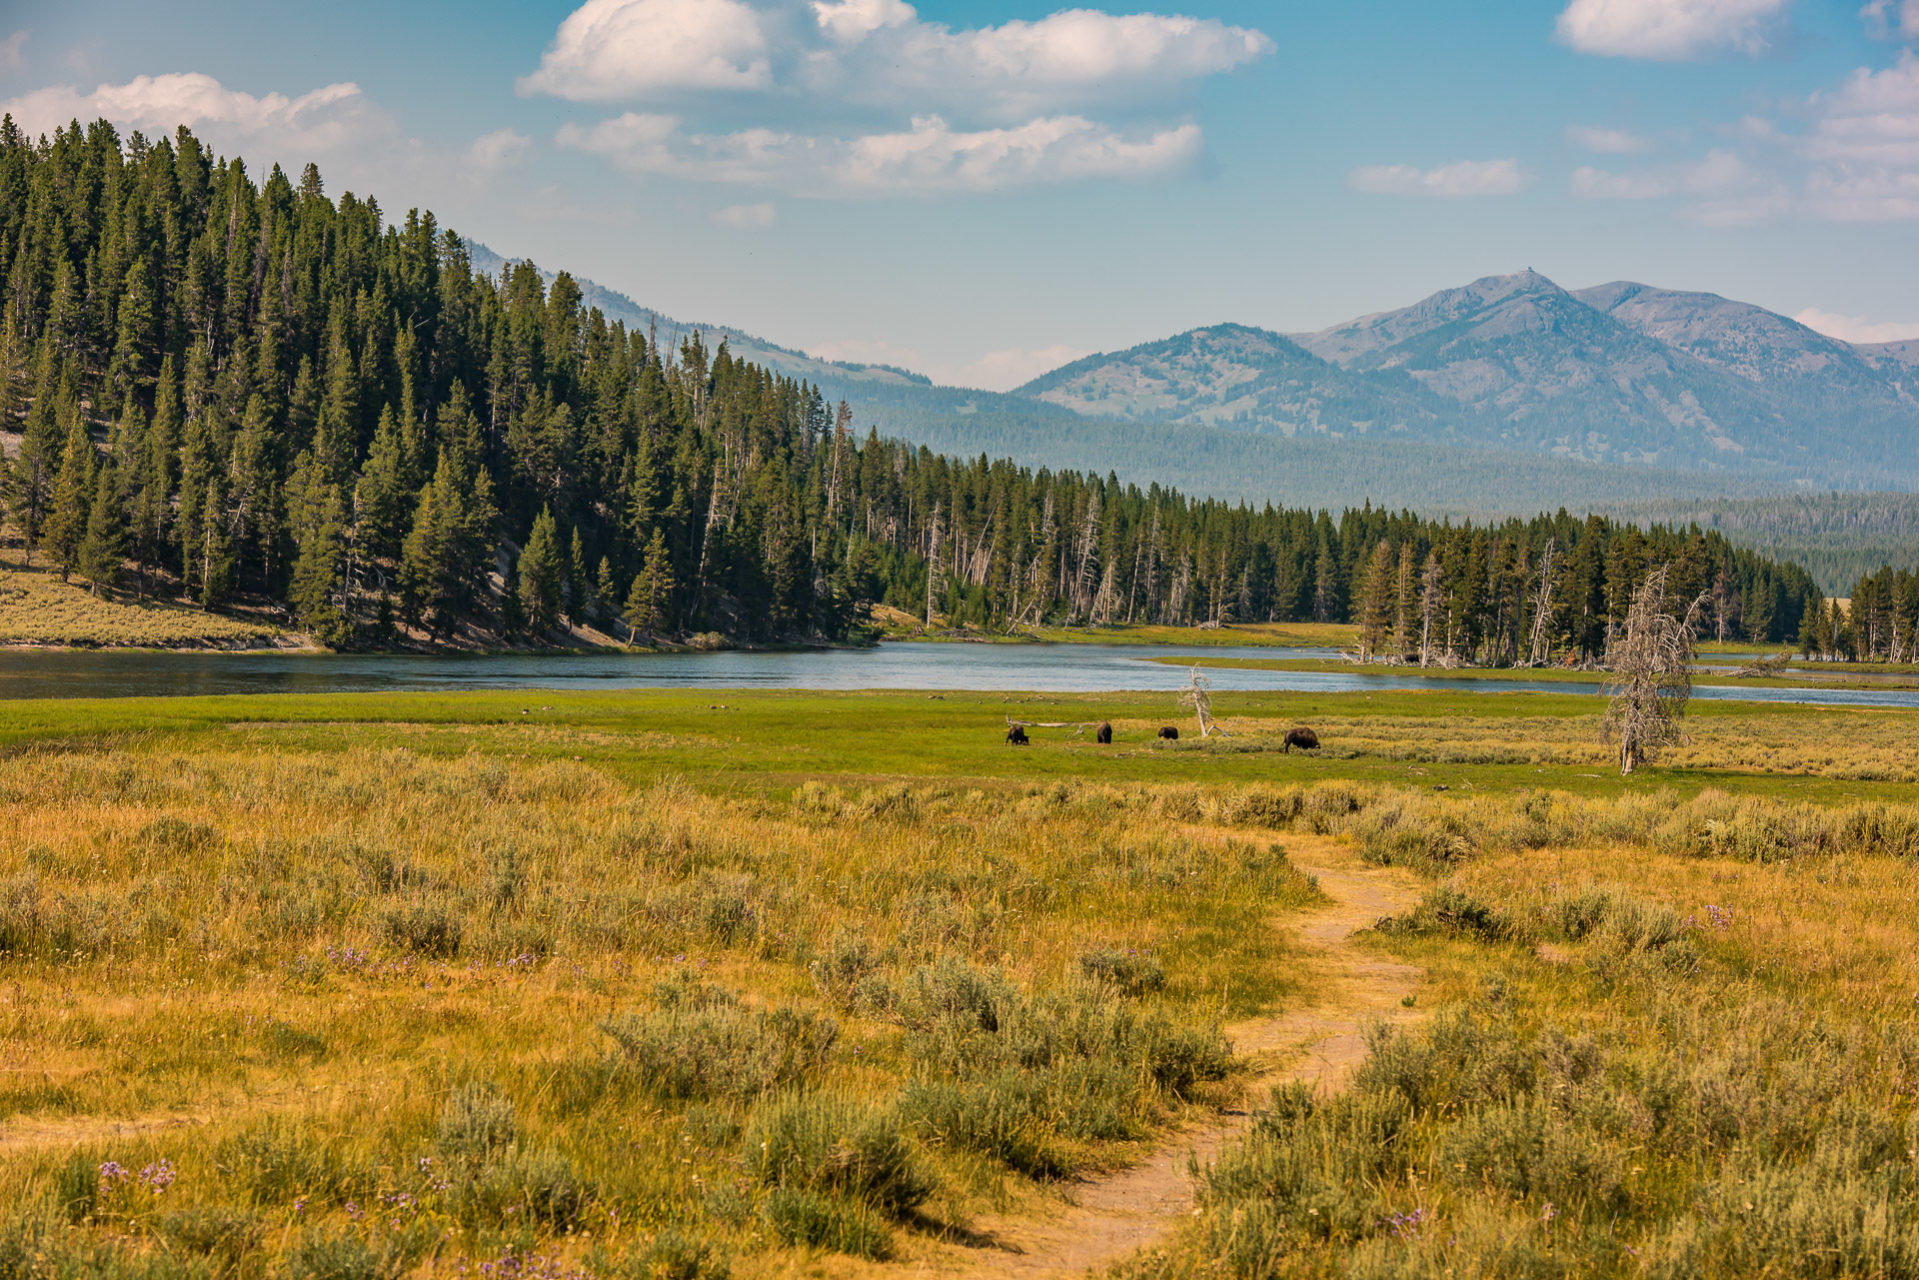 Hayden Valley - Yellowstone National Park, Wyoming - Part 4 - Travel Obscura